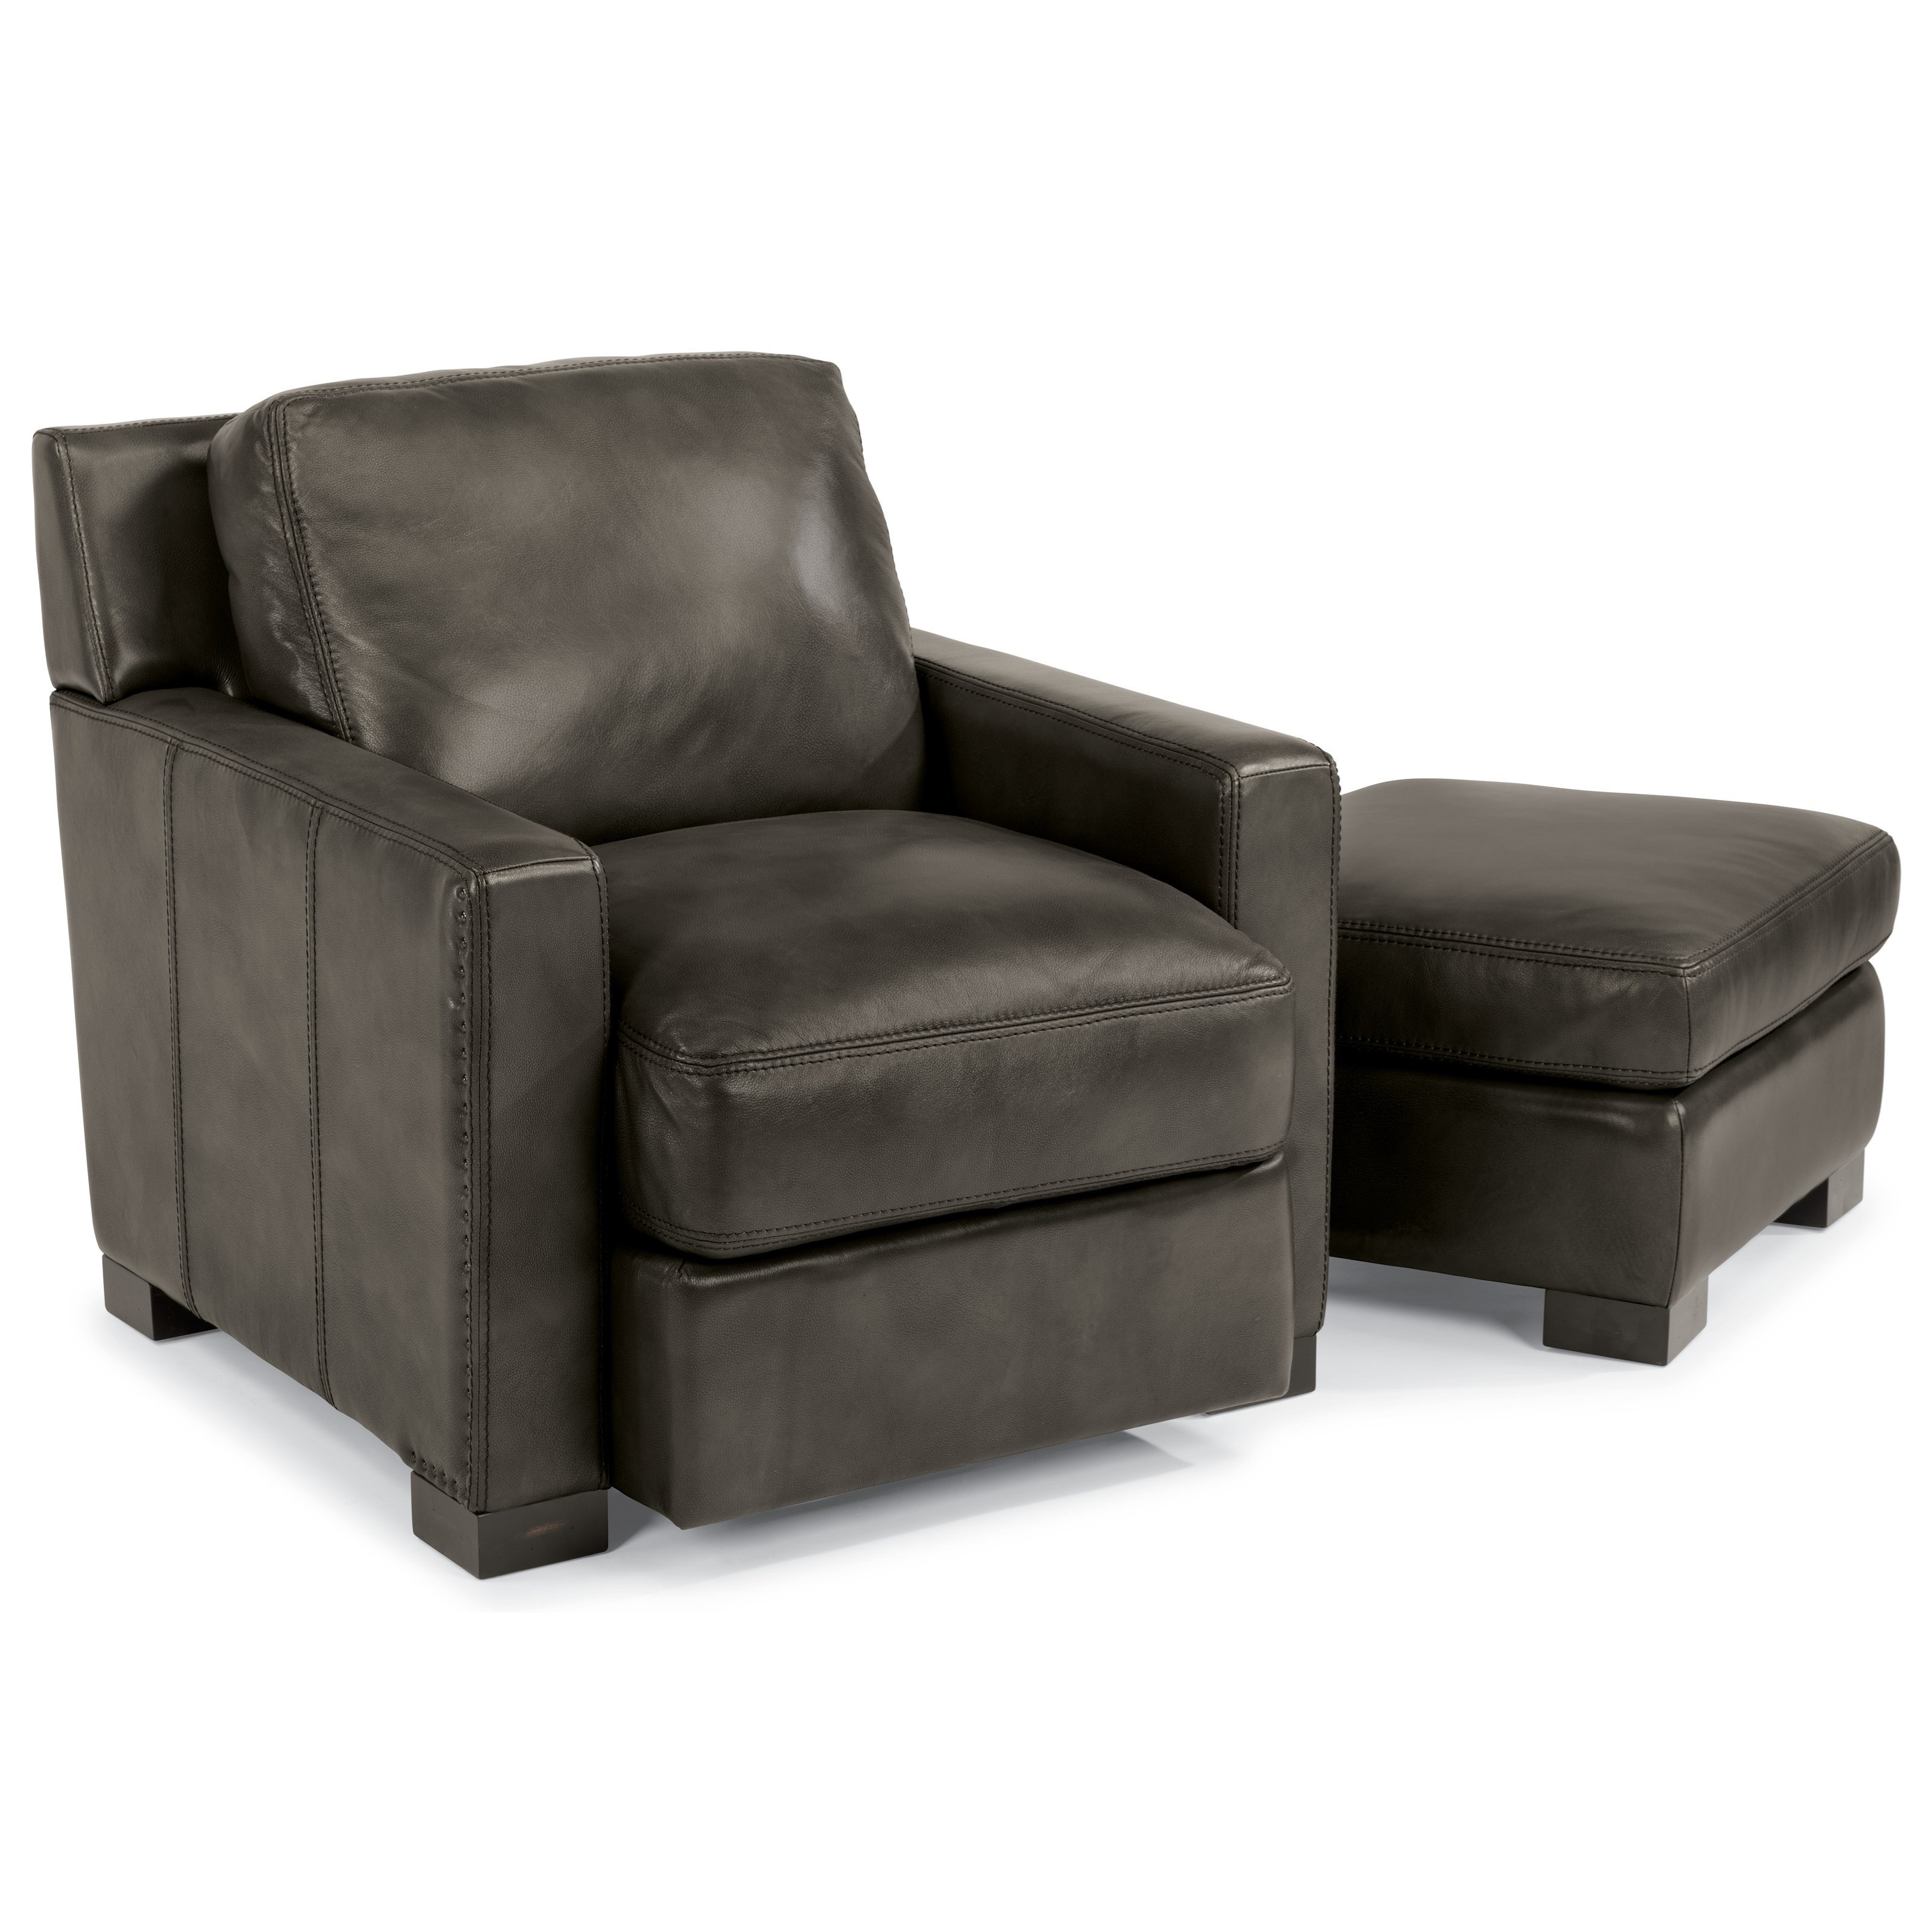 Flexsteel Latitudes Blake Contemporary Chair And Ottoman With Removable  Seat And Back Cushions